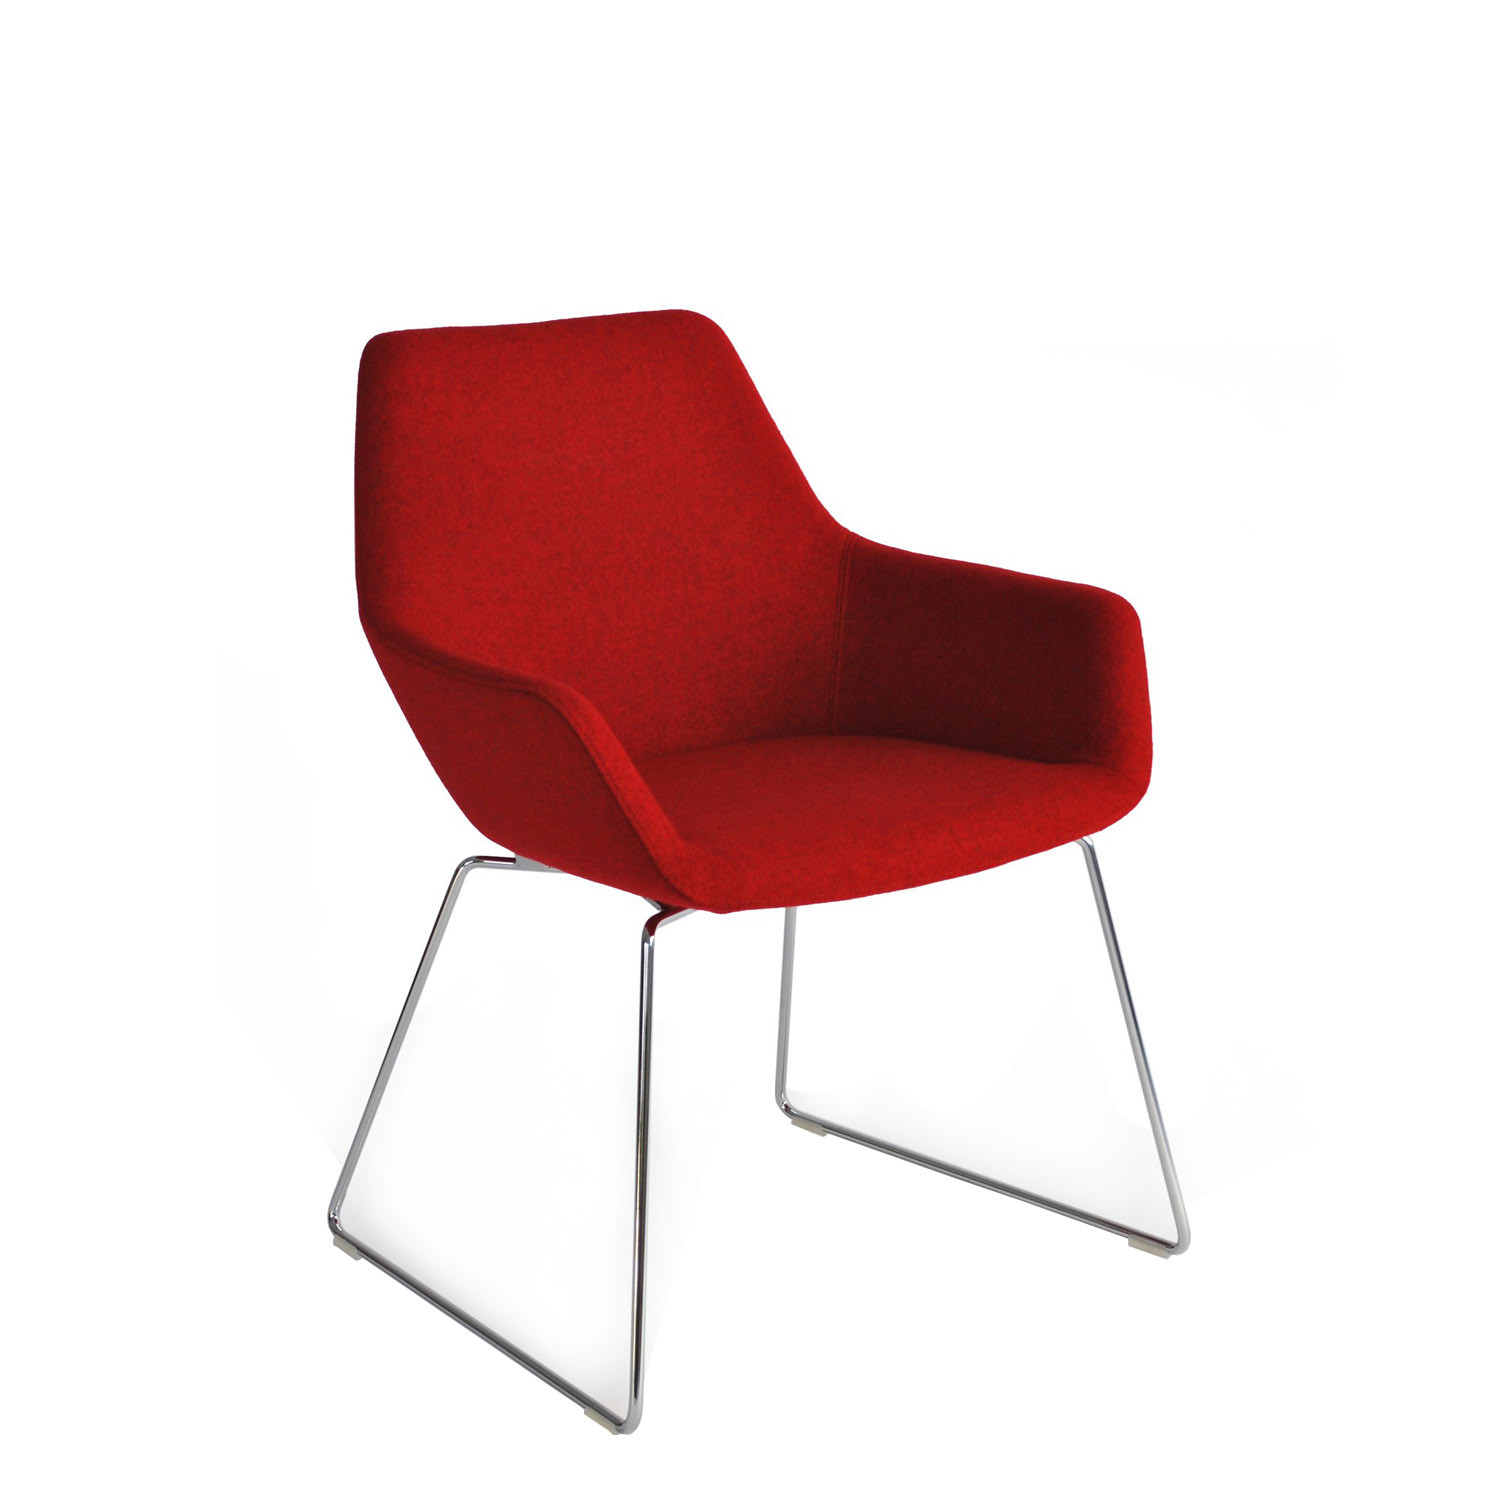 Hm86 Armchair with Sledbase